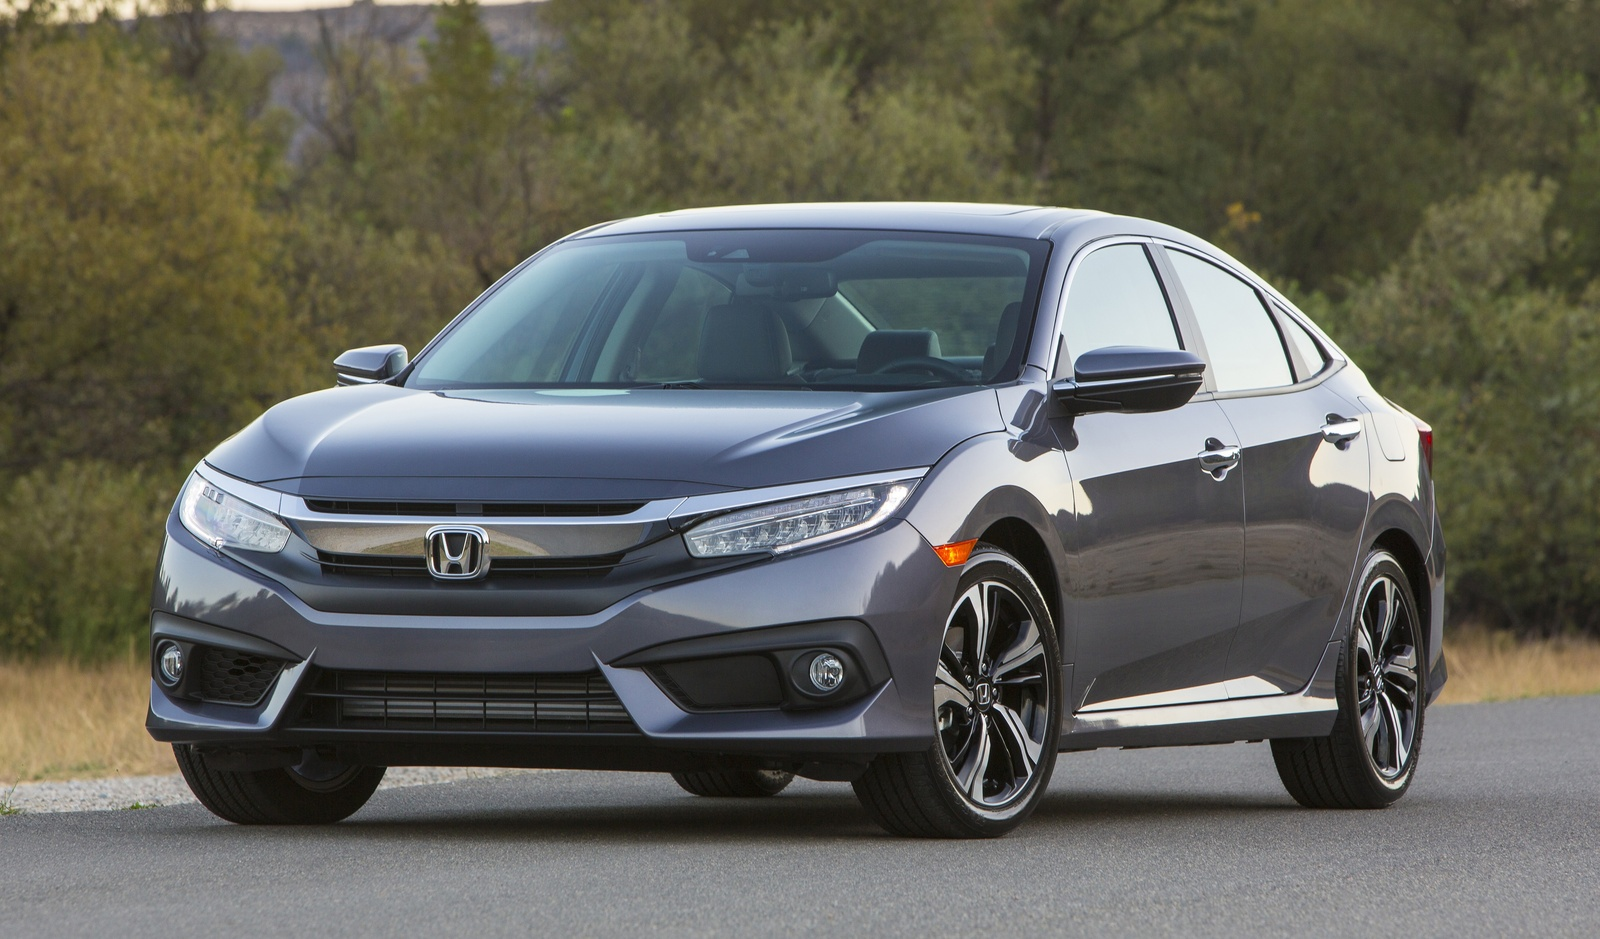 2016 Honda Civic front-quarter view